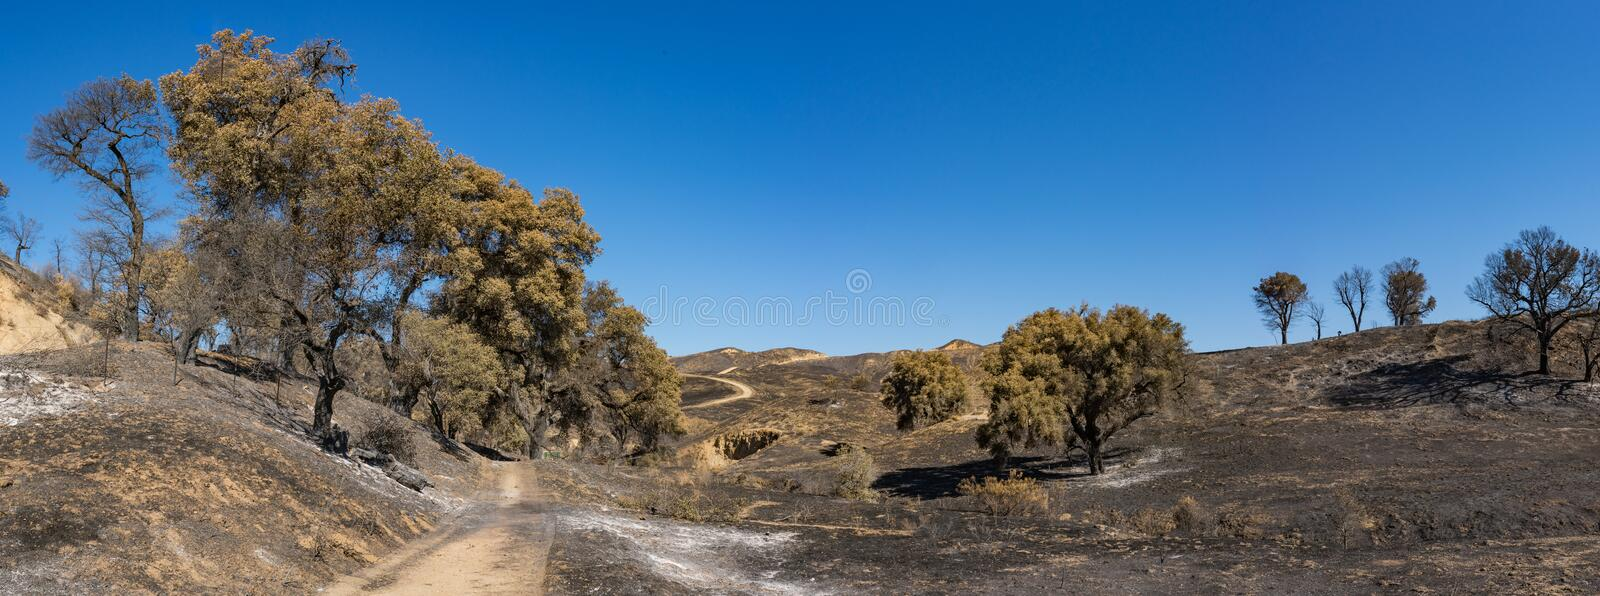 Walking Trail in Burn Zone stock photos